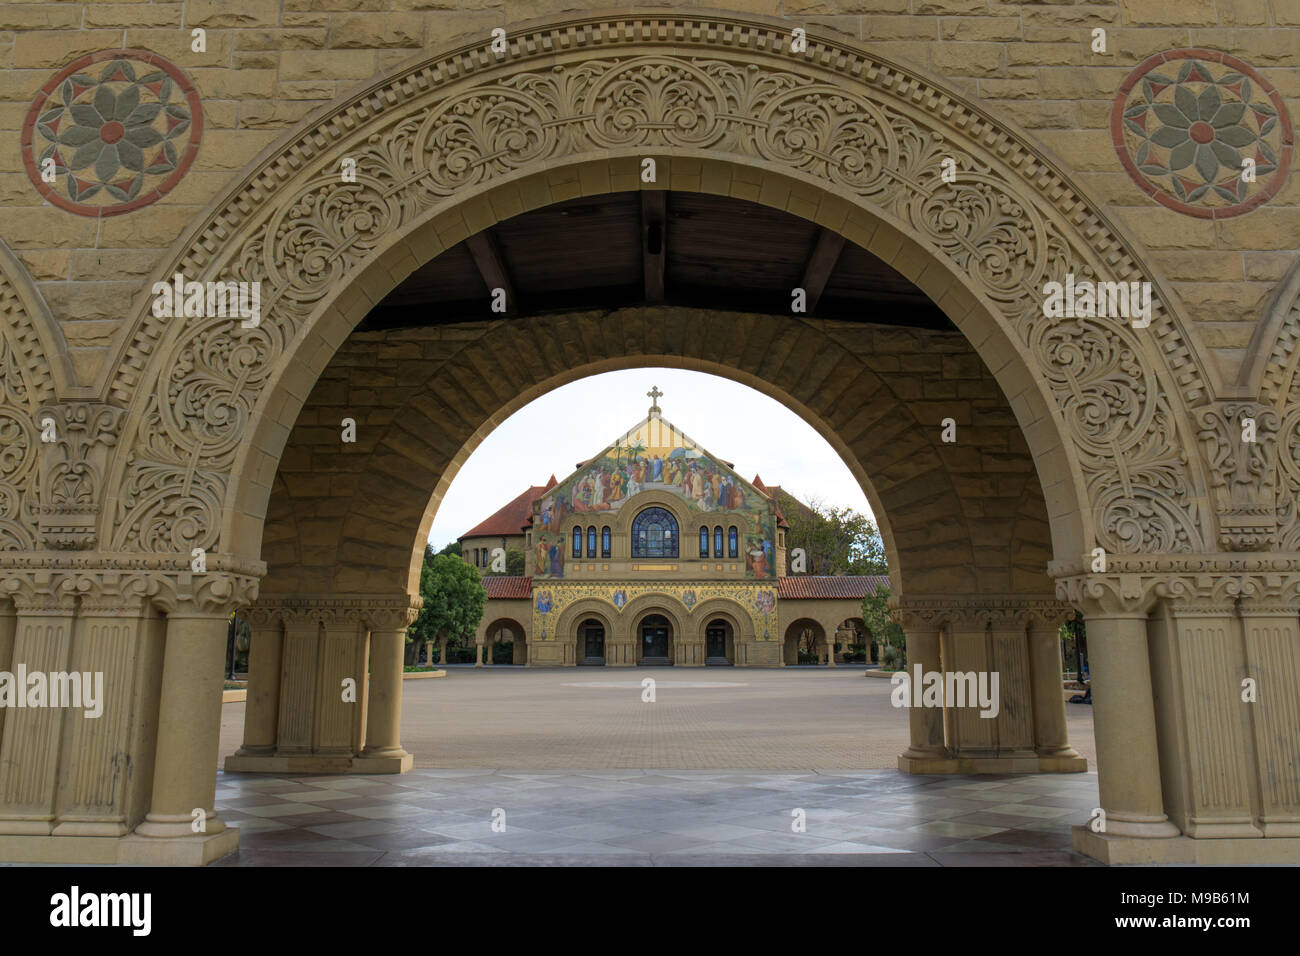 Stanford, California - March 19, 2018: North facade of Memorial Church from the Memorial Court of the Main Quad - Stock Image